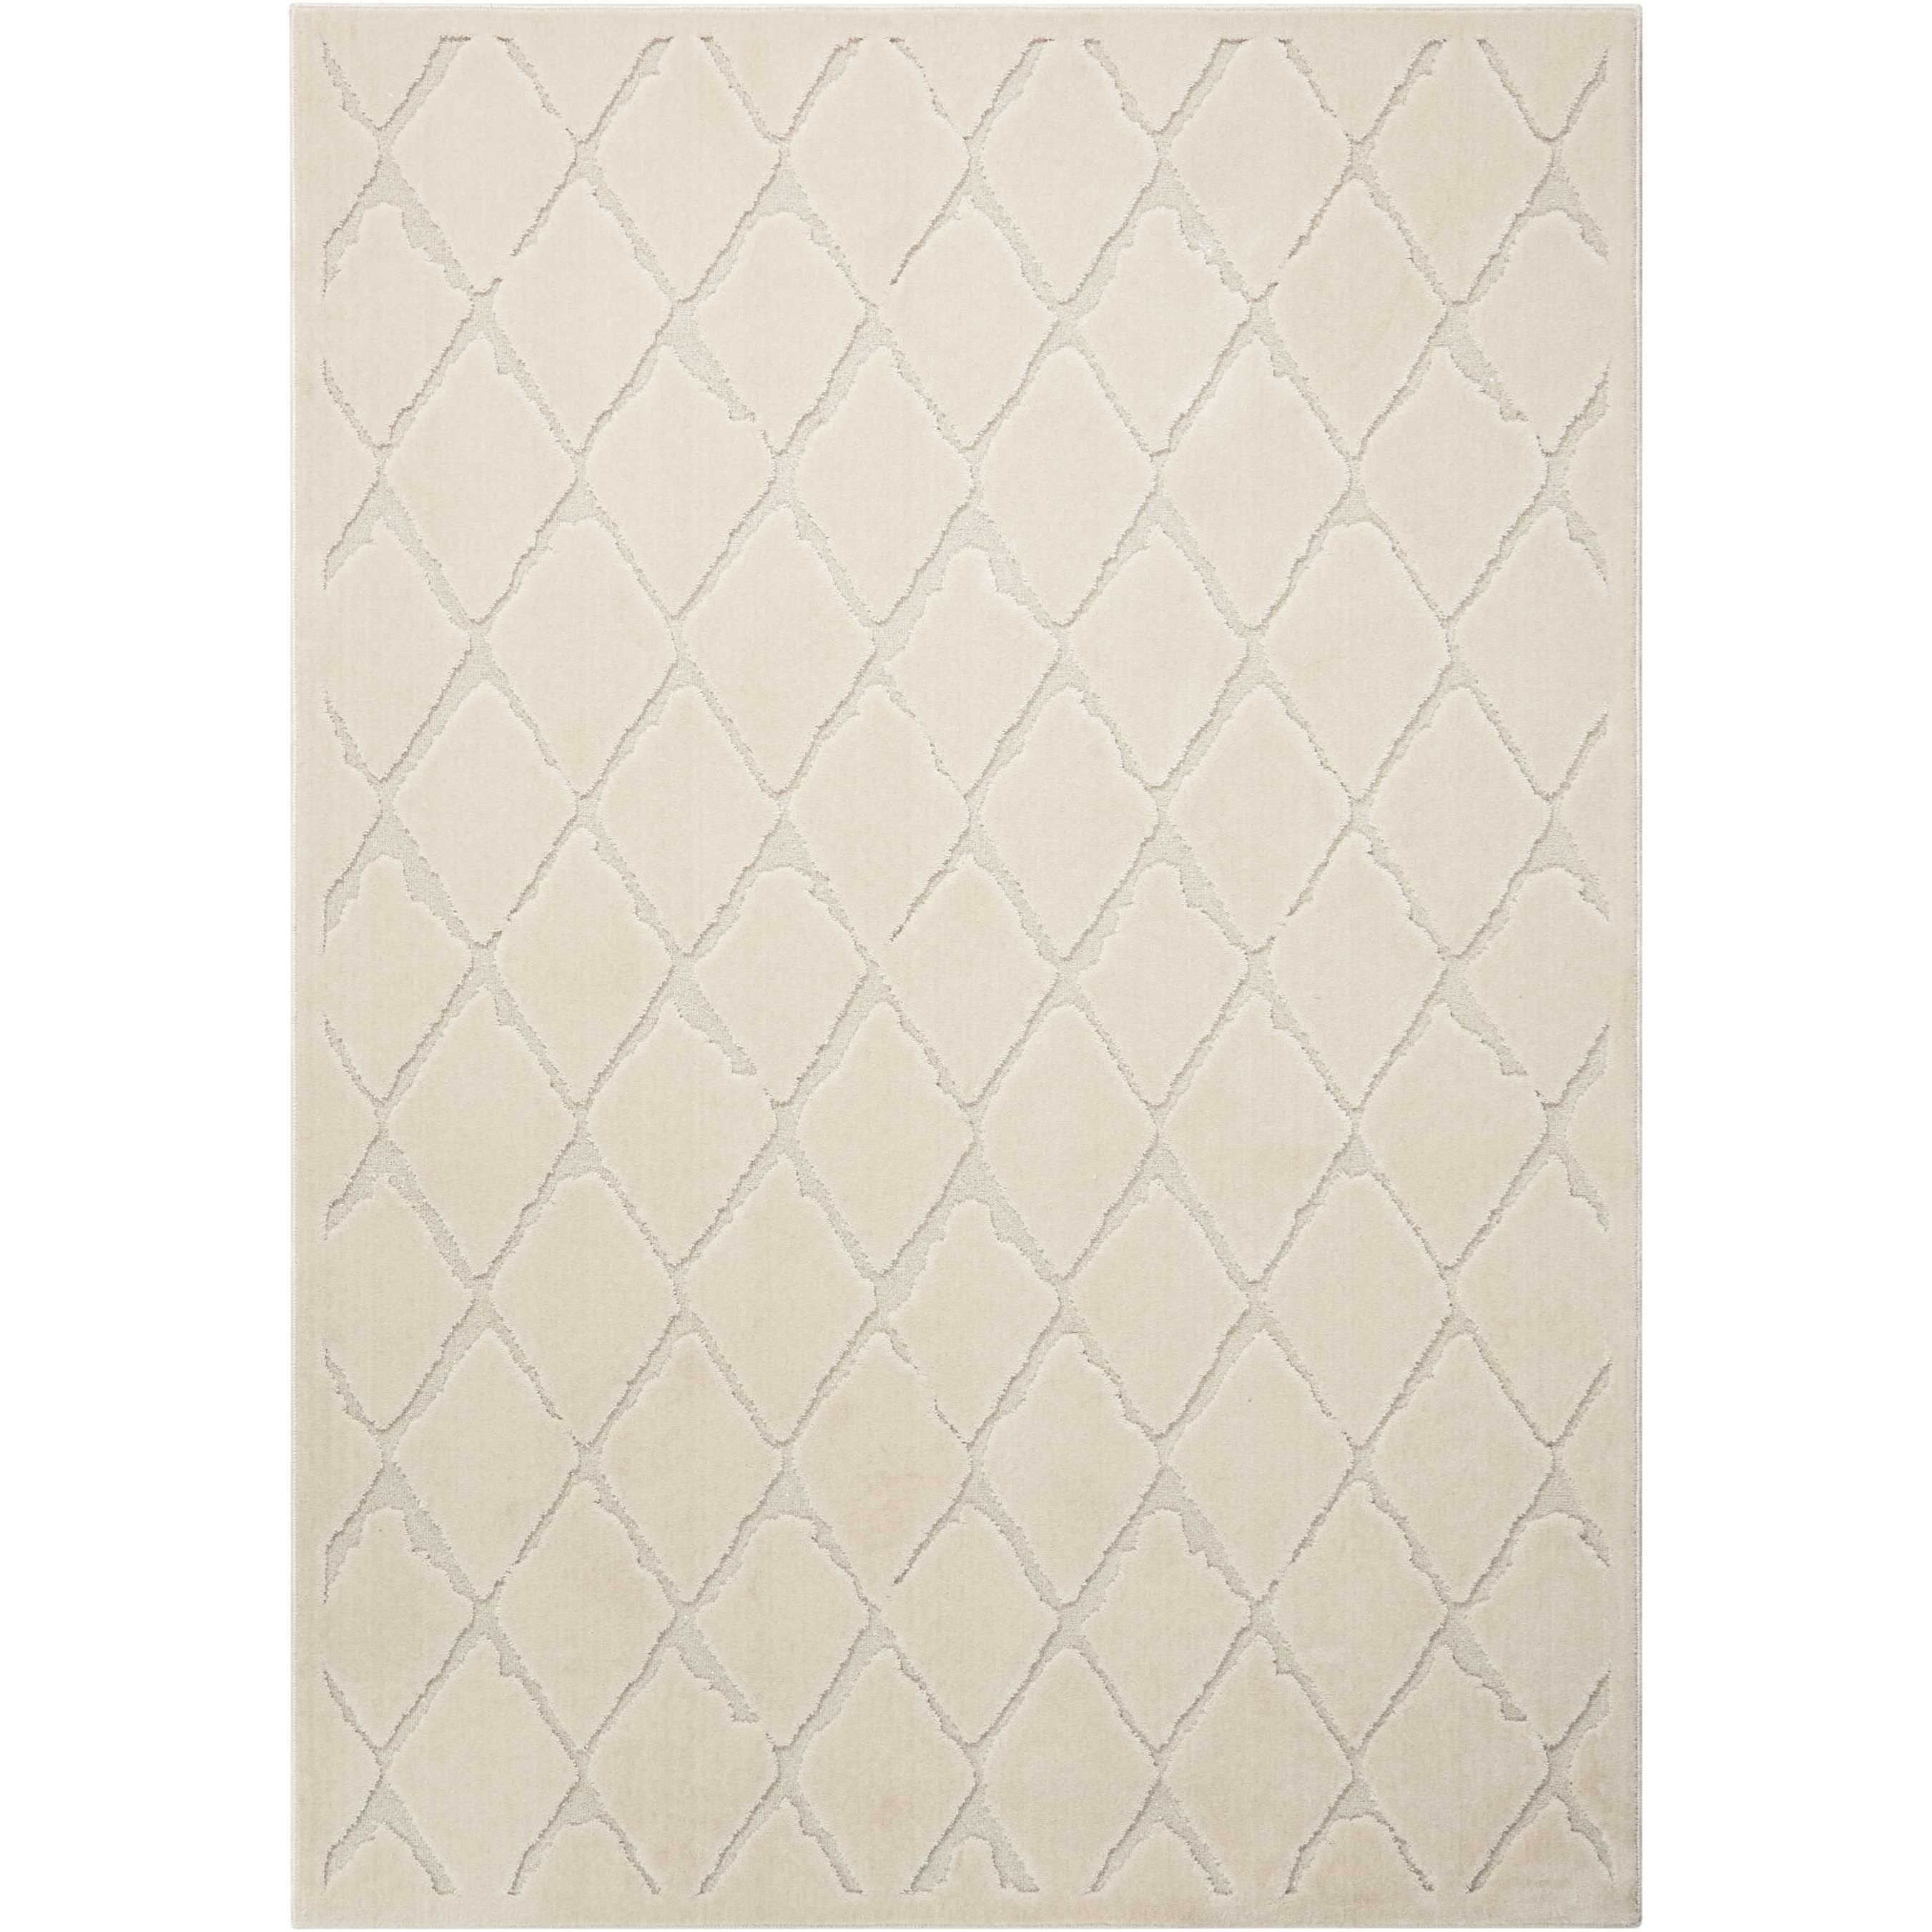 """Gleam 9'3"""" x 12'9"""" Rug by Michael Amini by Nourison at Home Collections Furniture"""